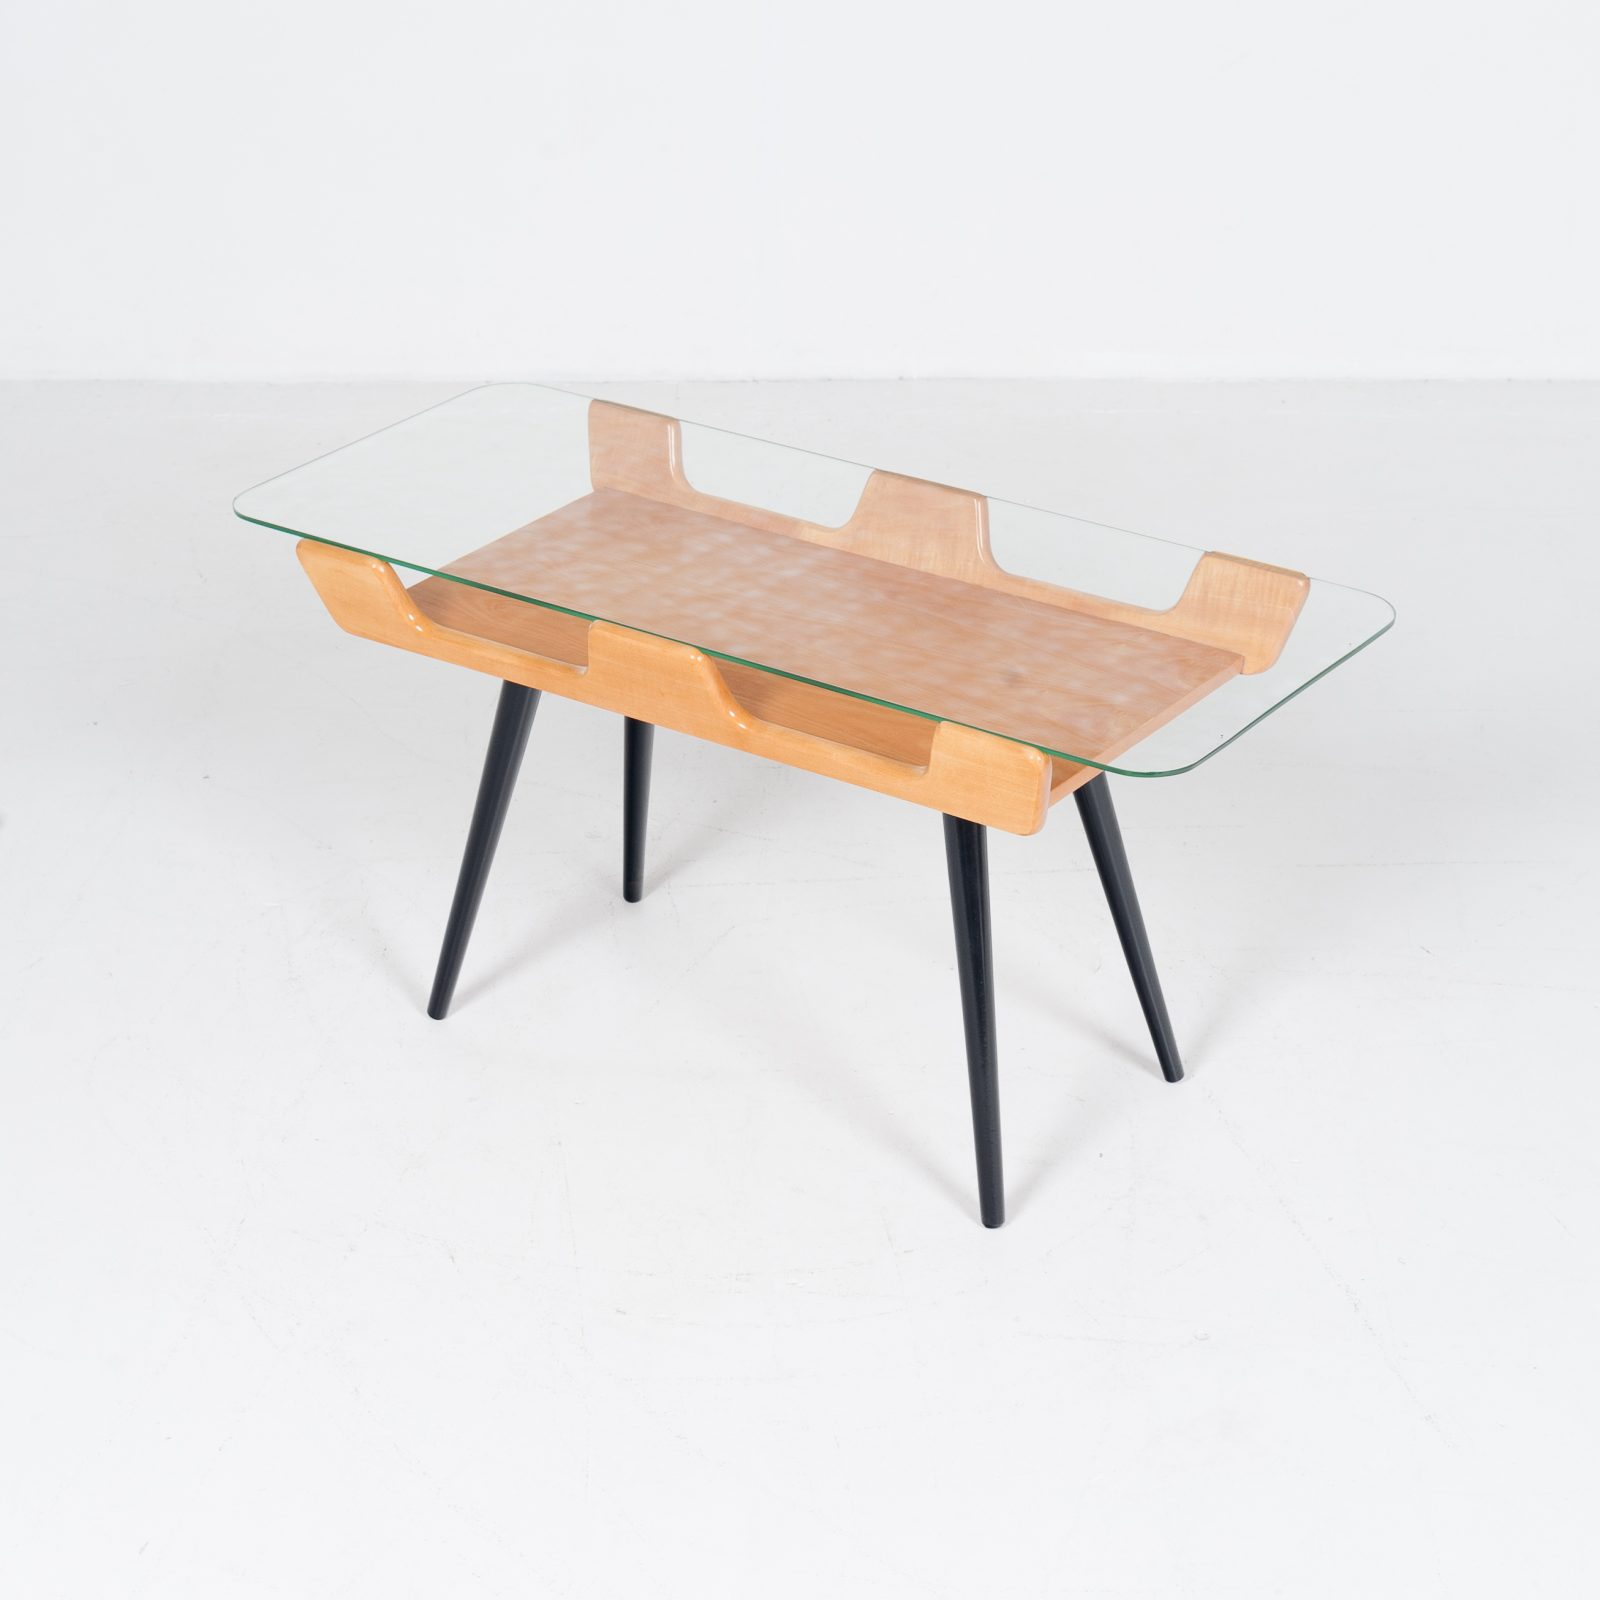 Coffee Table With Glass Top In The Style Of Gio Ponti, 1950s, Italy4